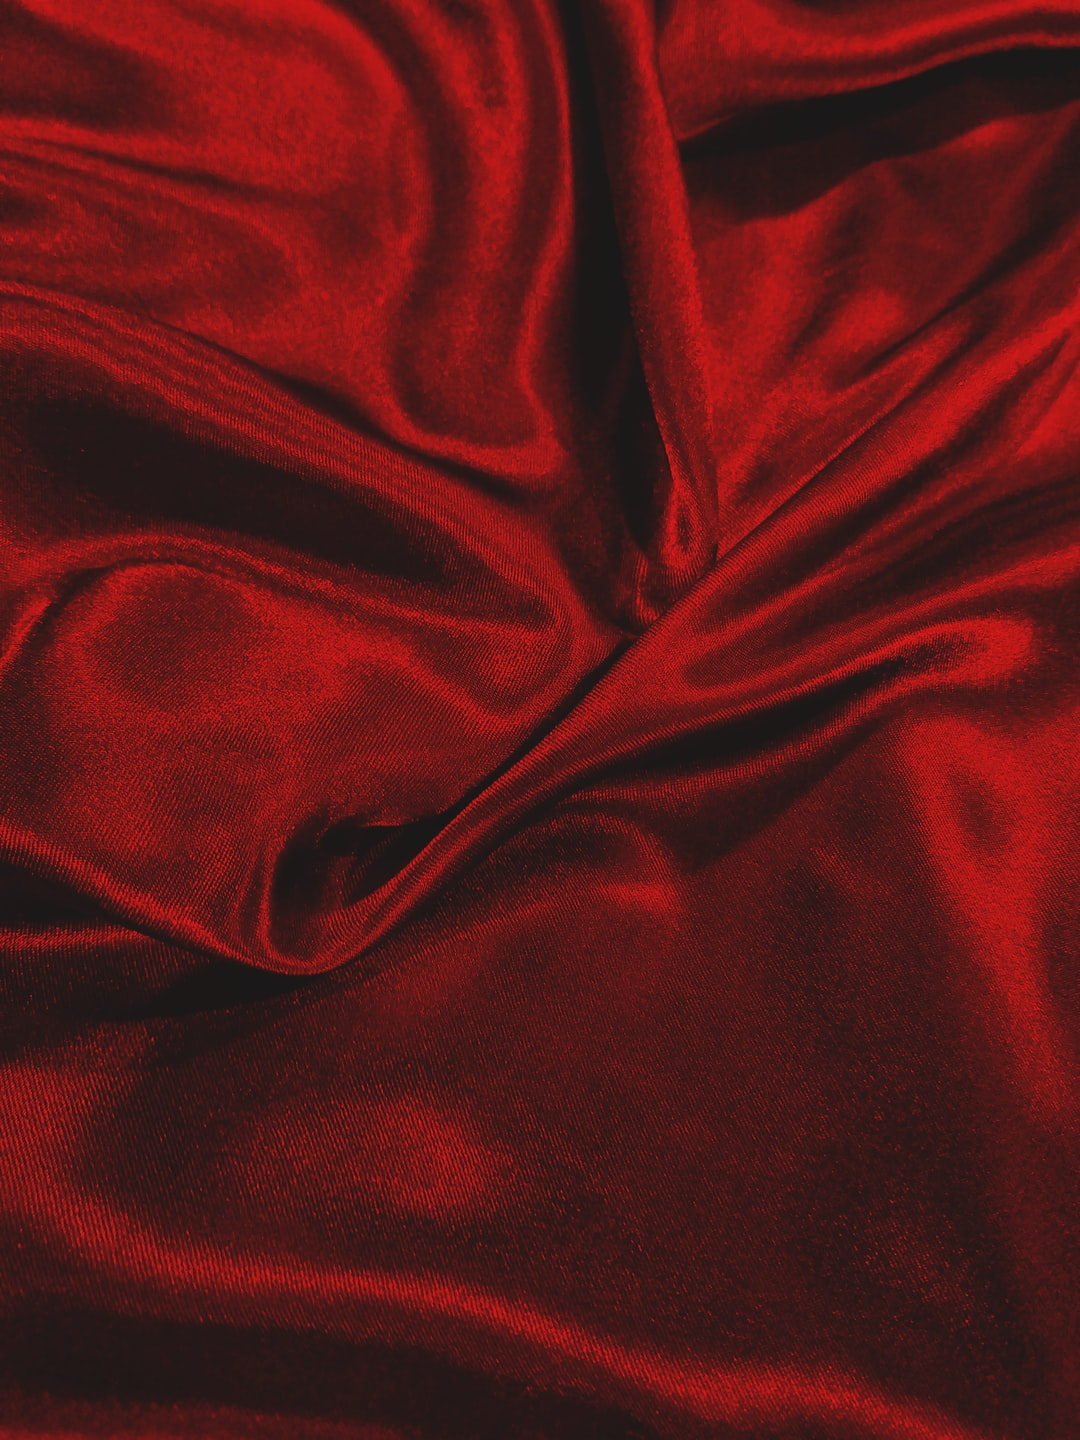 Red Wallpapers: Free HD Download [500+